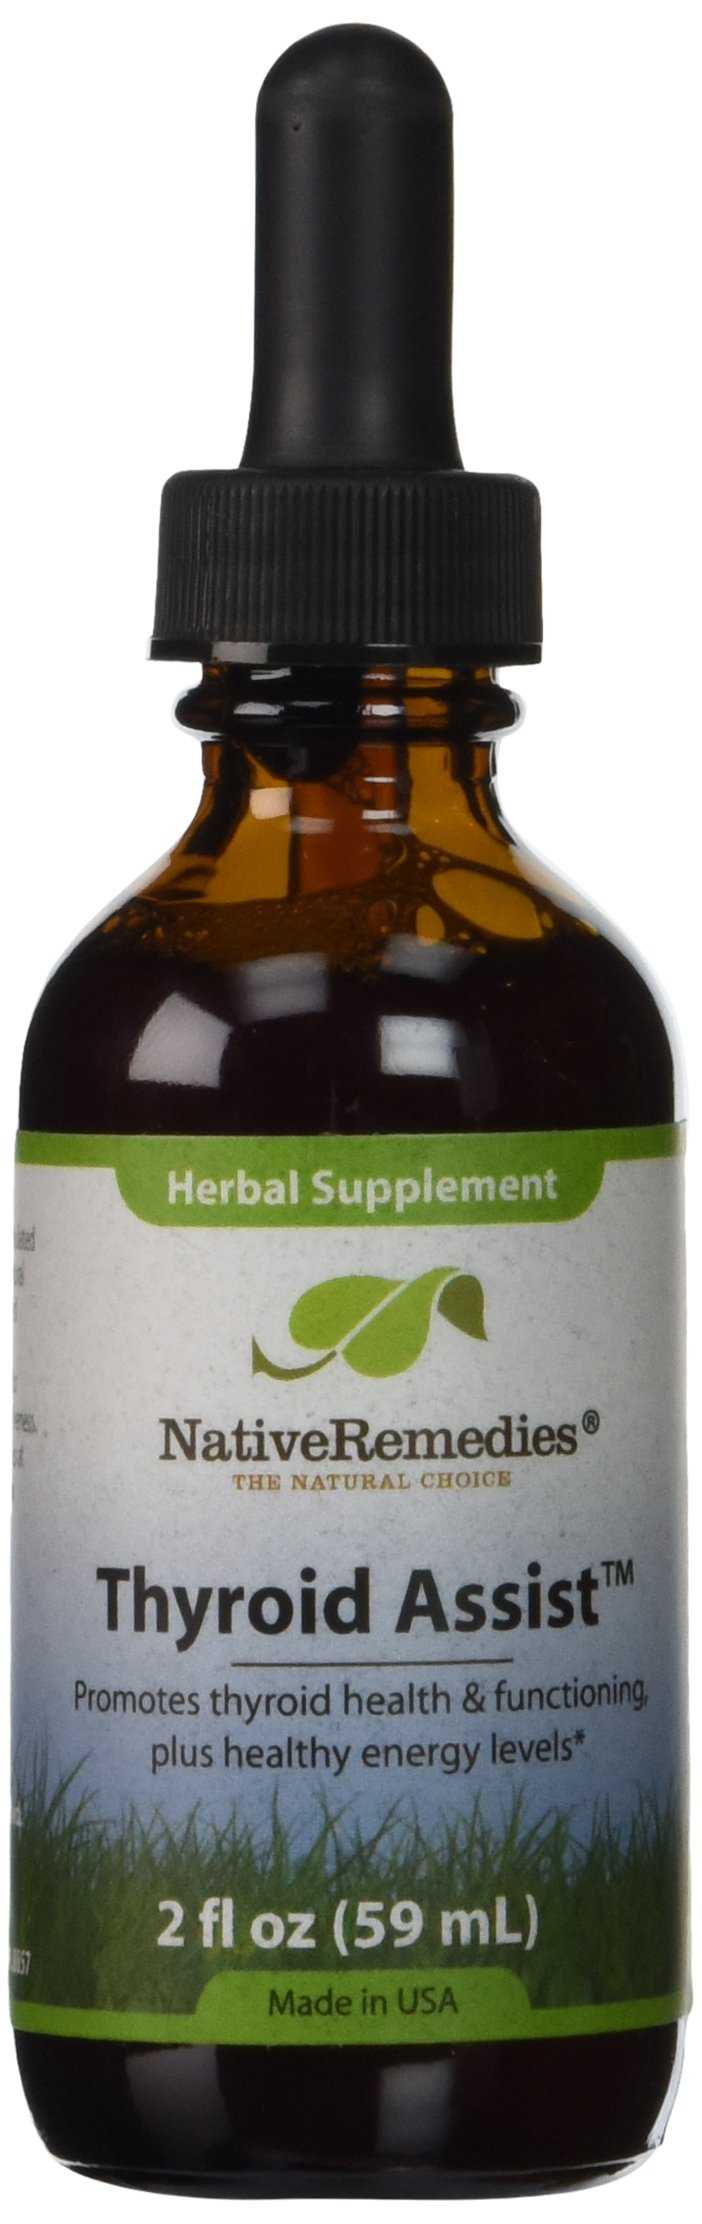 Native Remedies Thyroid Assist 2 oz by Native Remedies